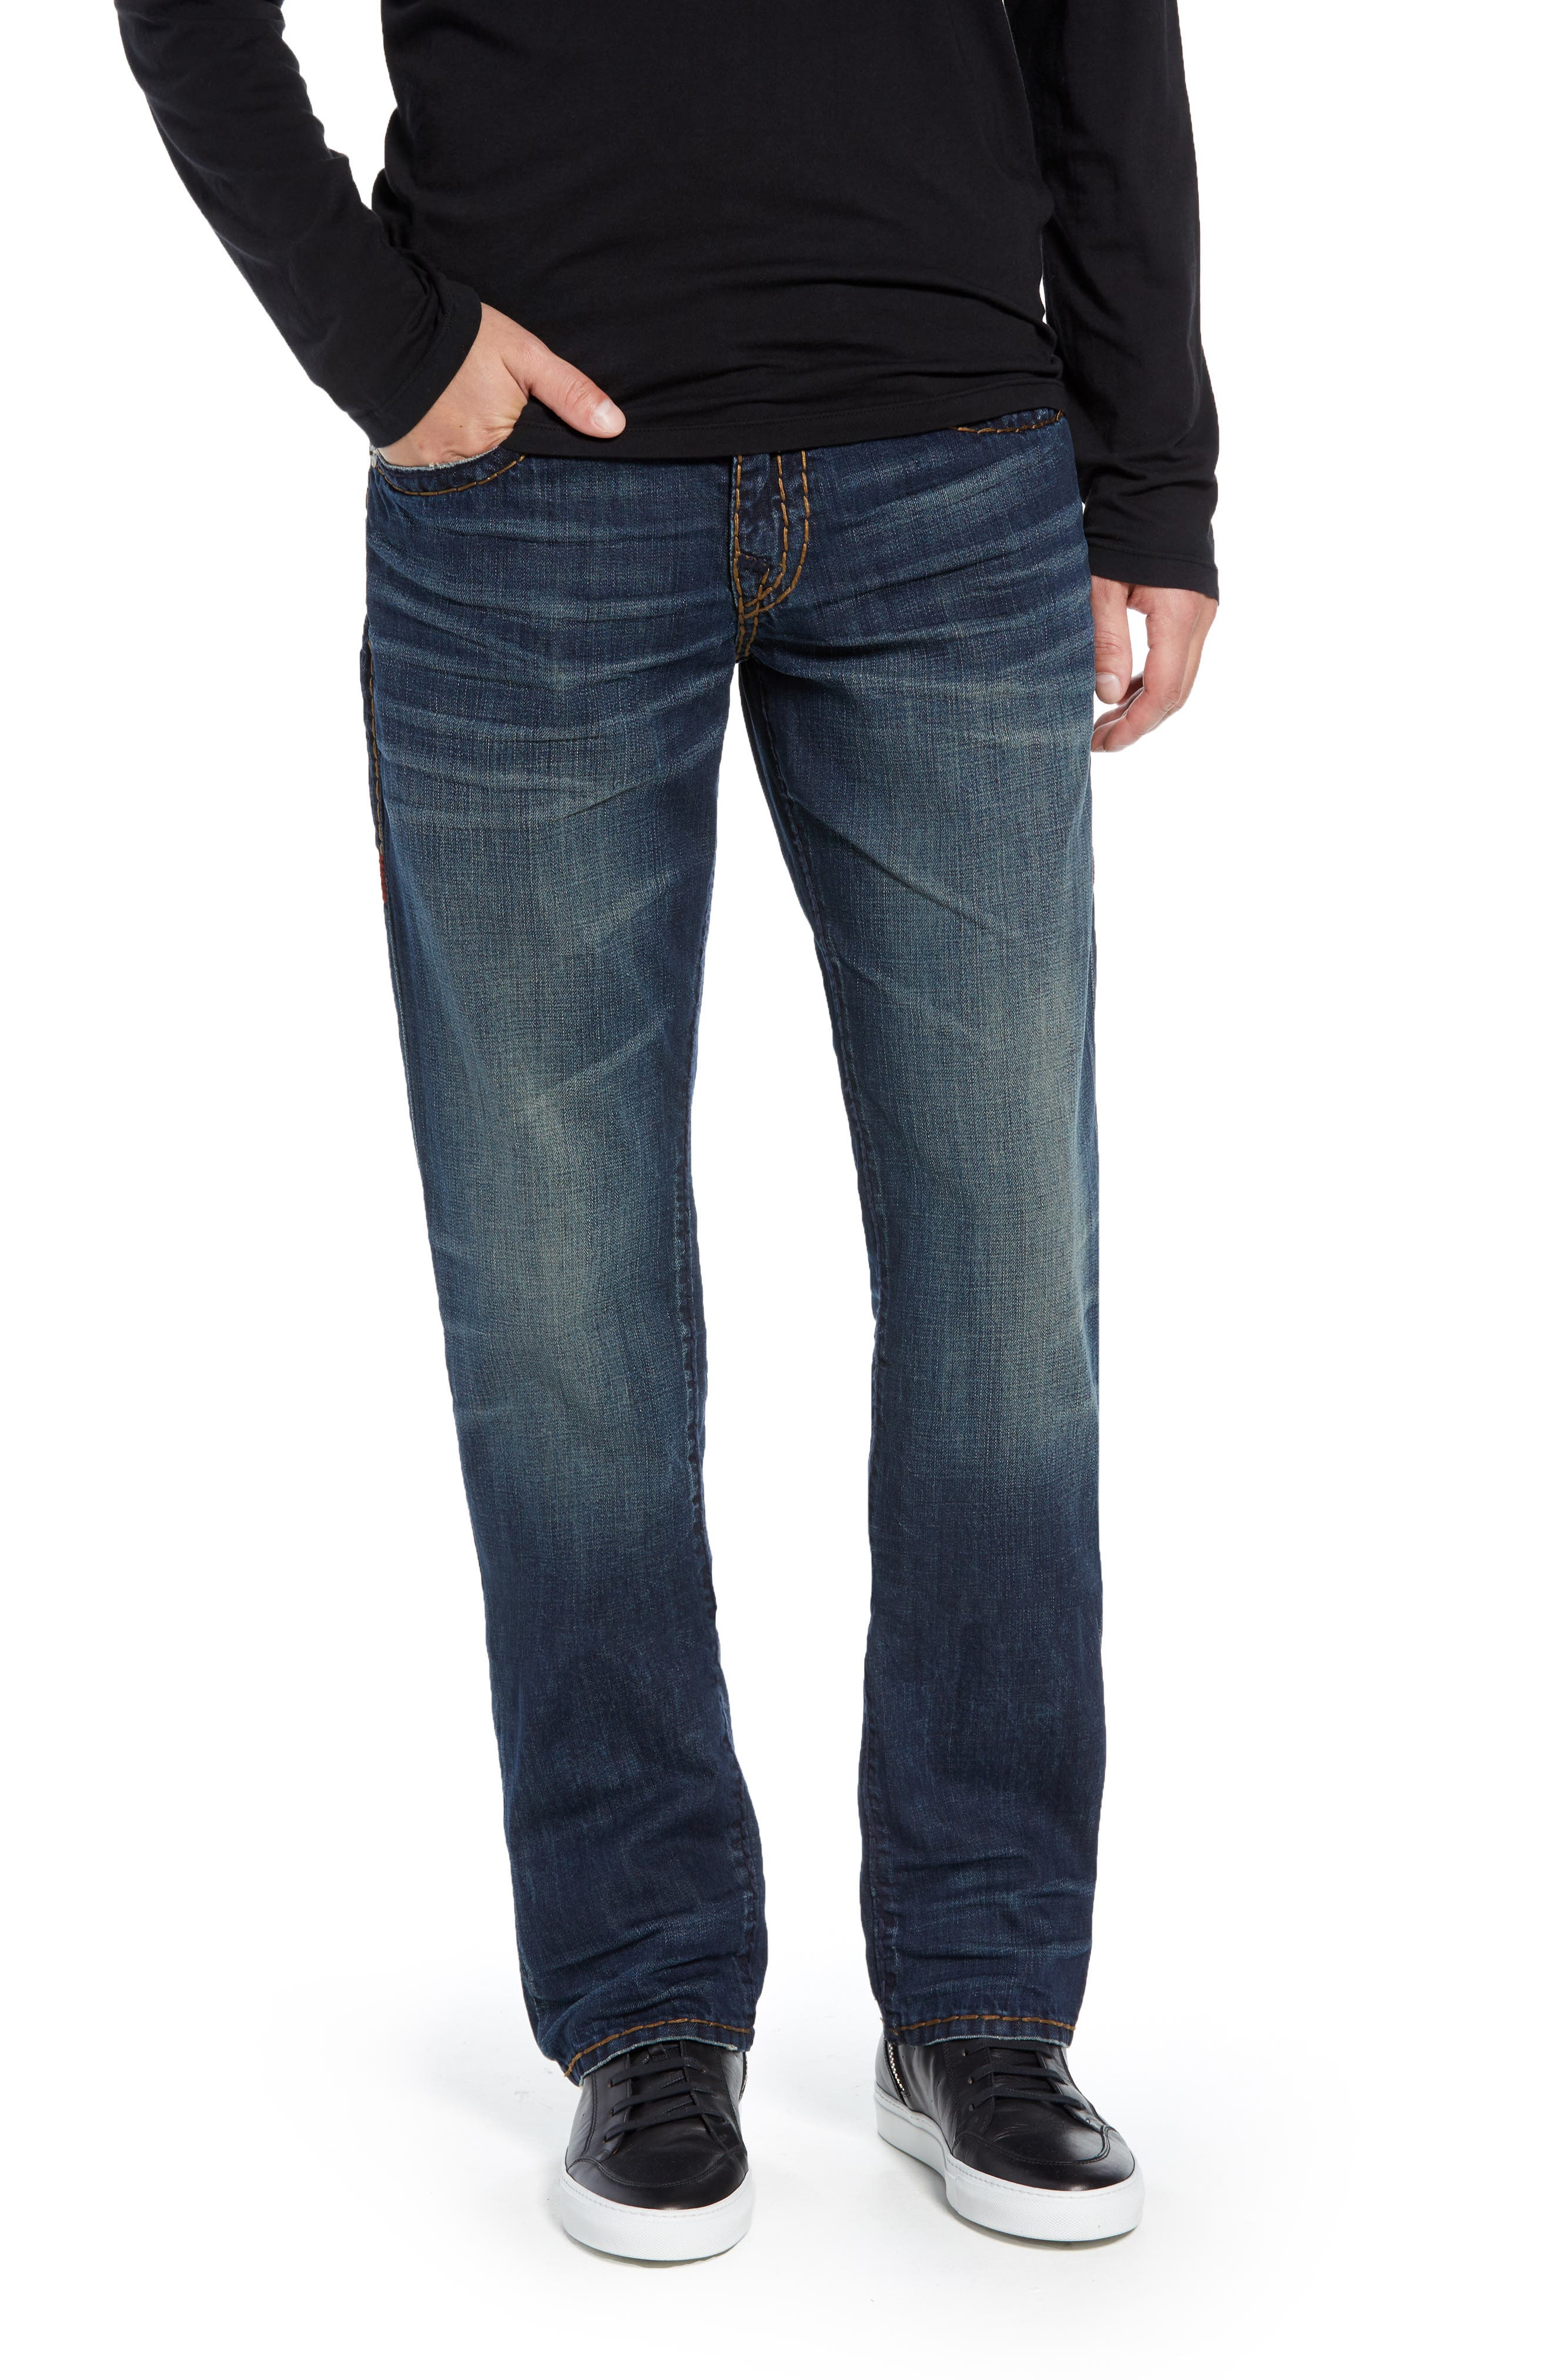 Ricky Skinny Fit Jeans,                             Main thumbnail 1, color,                             DARK MONORAIL